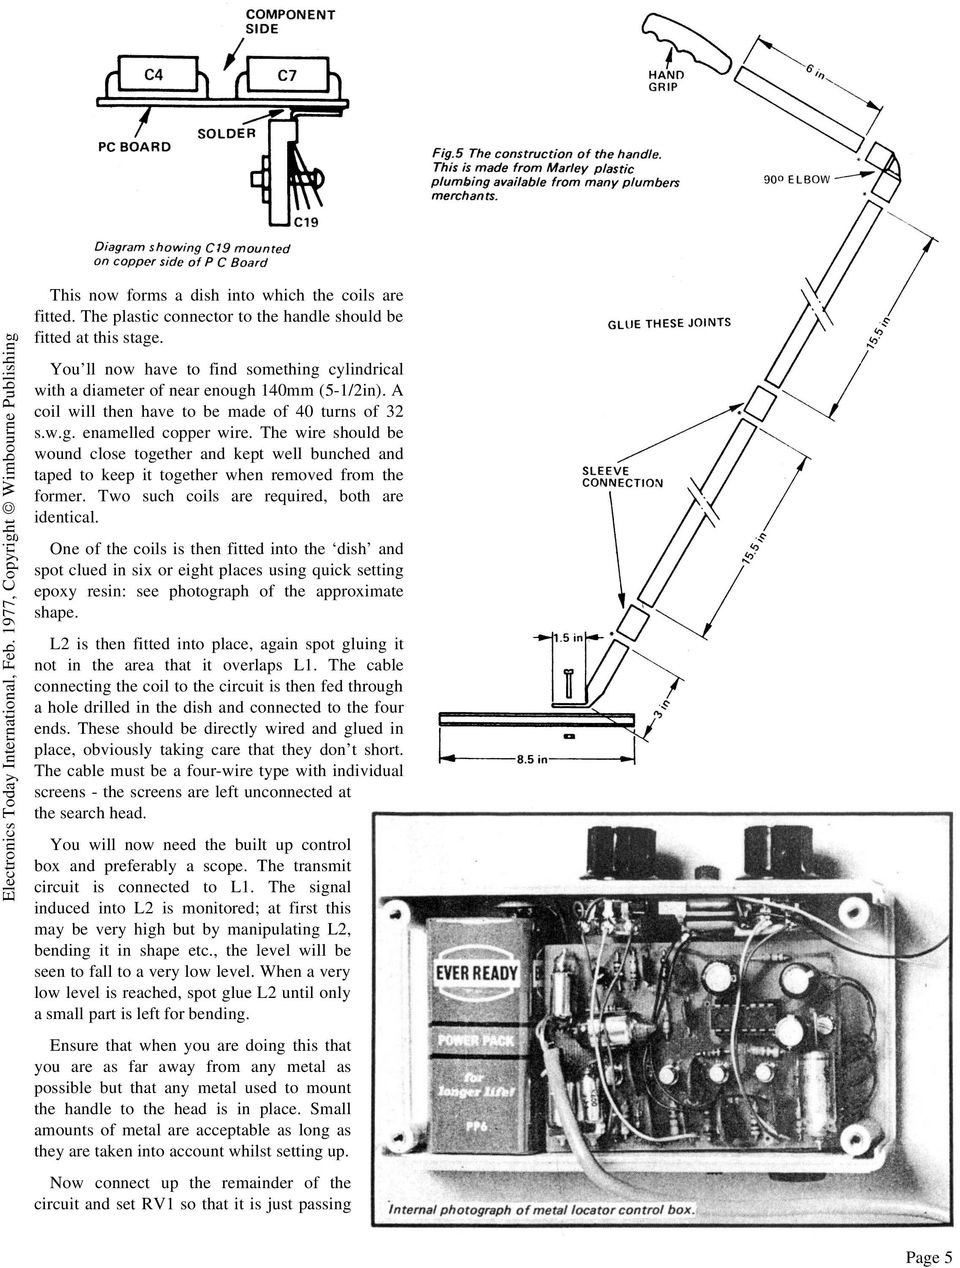 Eti Project 549 Induction Balance Metal Detector Pdf Door Phone Intercom Circuit Using Lm386 Eleccircuitcom The Wire Should Be Wound Close Together And Kept Well Bunched Taped To Keep It